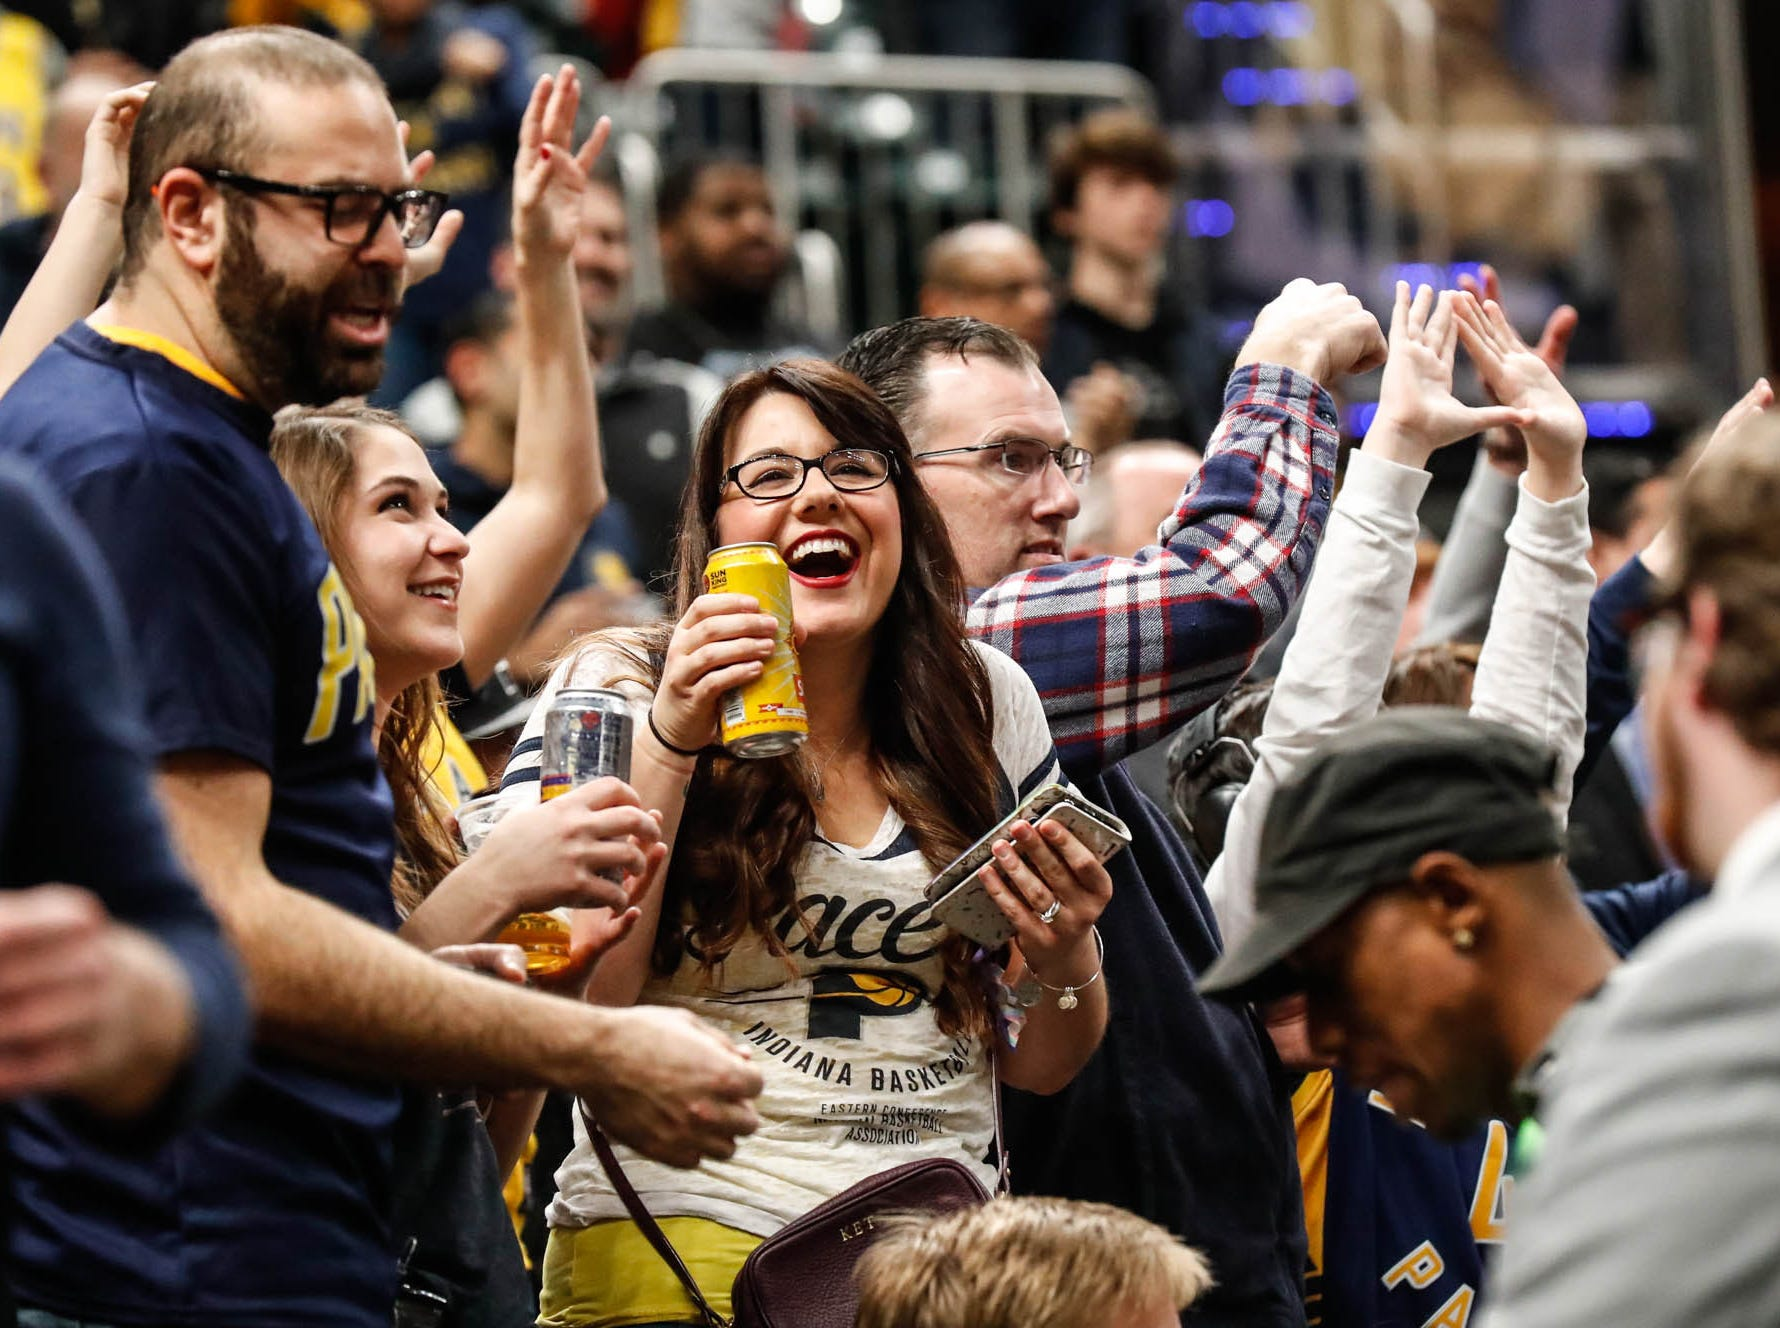 Indiana Pacers fans enjoy a game between the Pacers and Hornets at Bankers Life Fieldhouse on Sunday, Jan. 20, 2019.